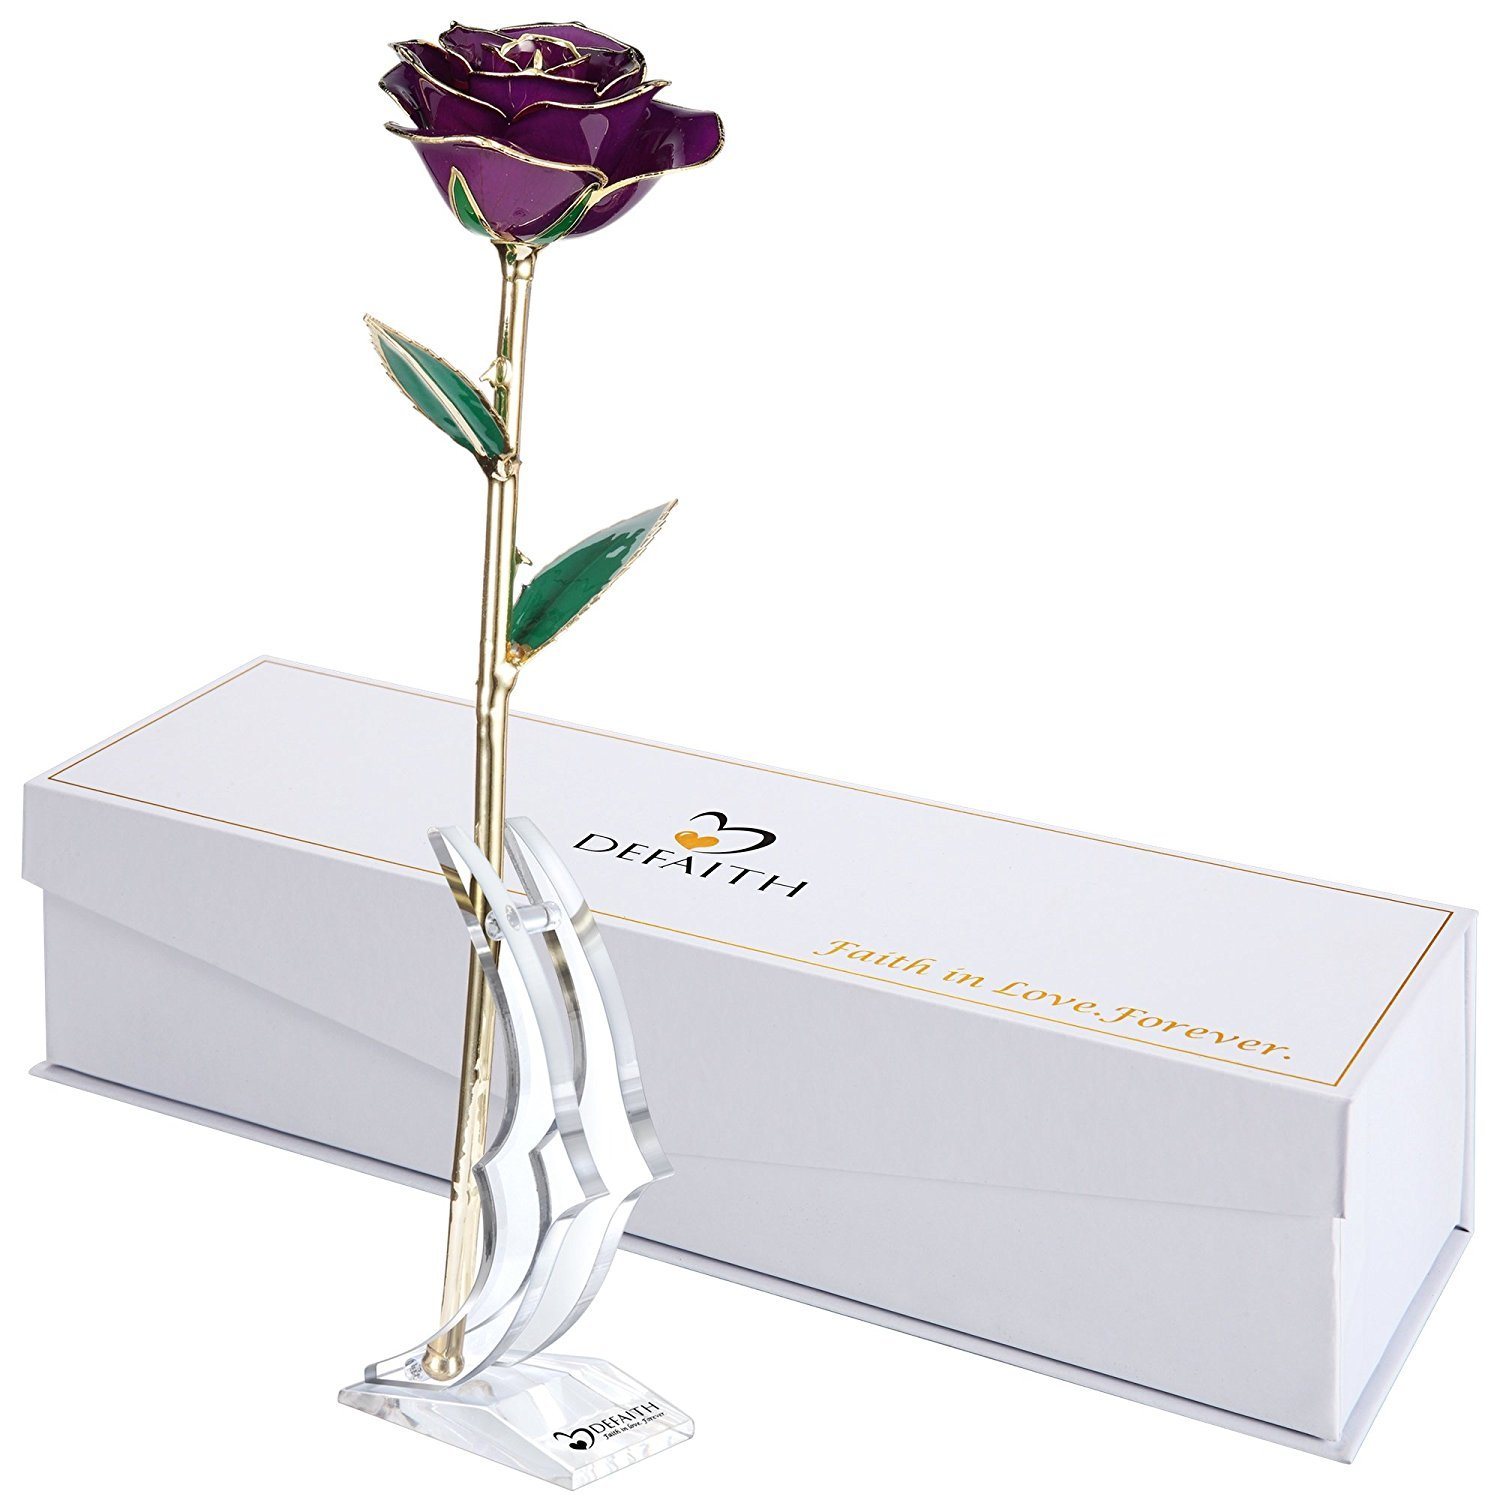 (N.Purple) - DEFAITH Purple 24K Gold Rose, Unique Anniversary Gifts for Mother Wife Girlfriend Her Women, Made from Real Rose Flower with Stand B014IZ4NDW N.purple